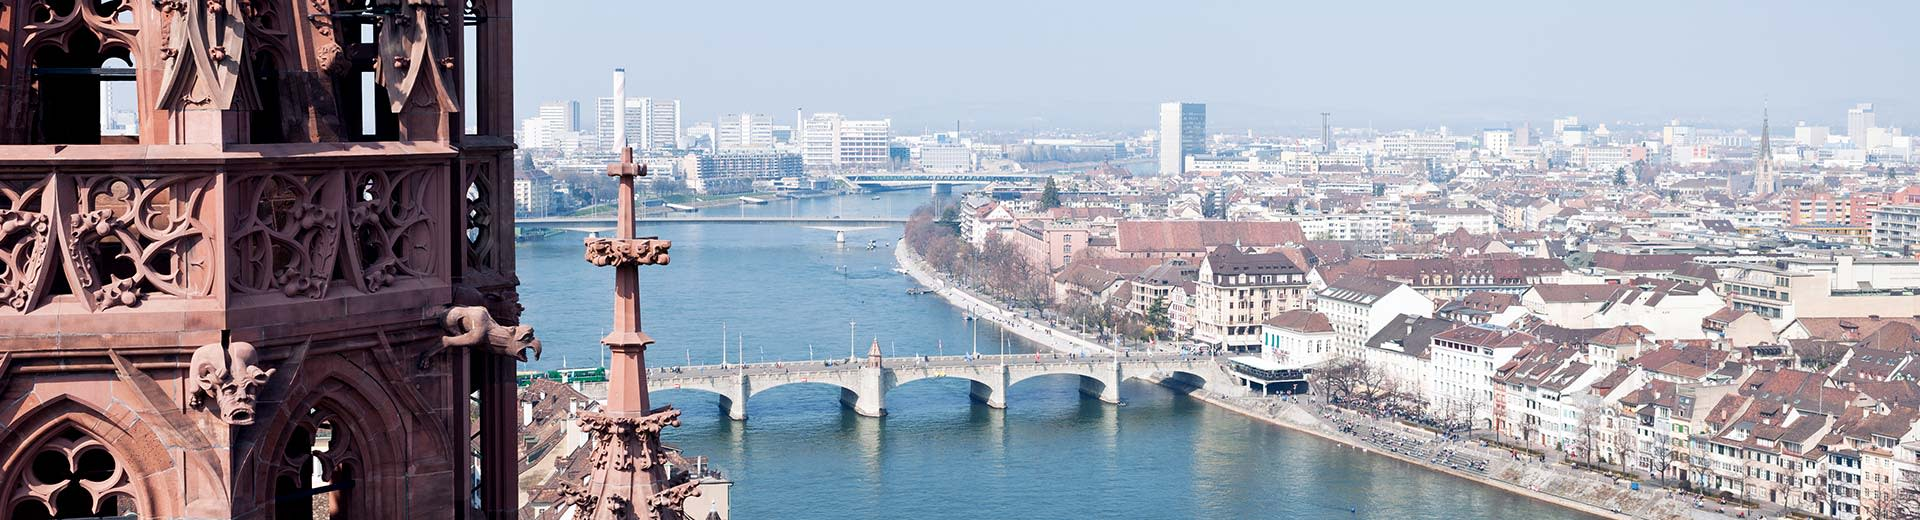 Birds eye view of the Rheine river in Basel on a sunny day, with a tower partially in view on the left and three bridges that cross the river.